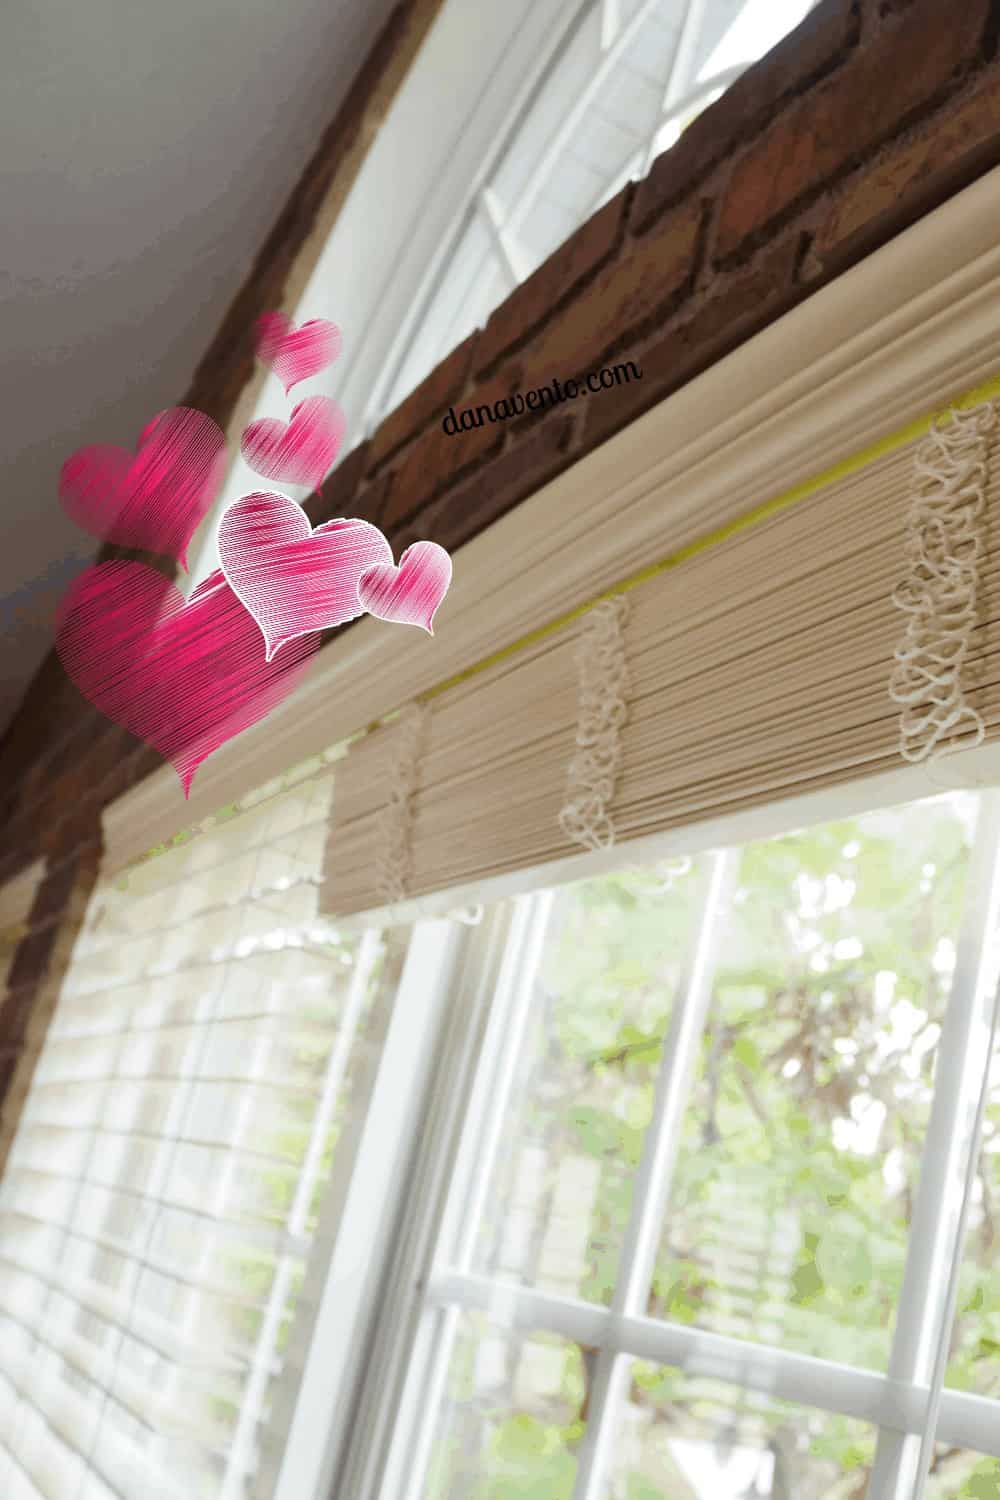 HEADRAIL LOVE. One headrail and 2 separate blinds . Upgrade your blinds